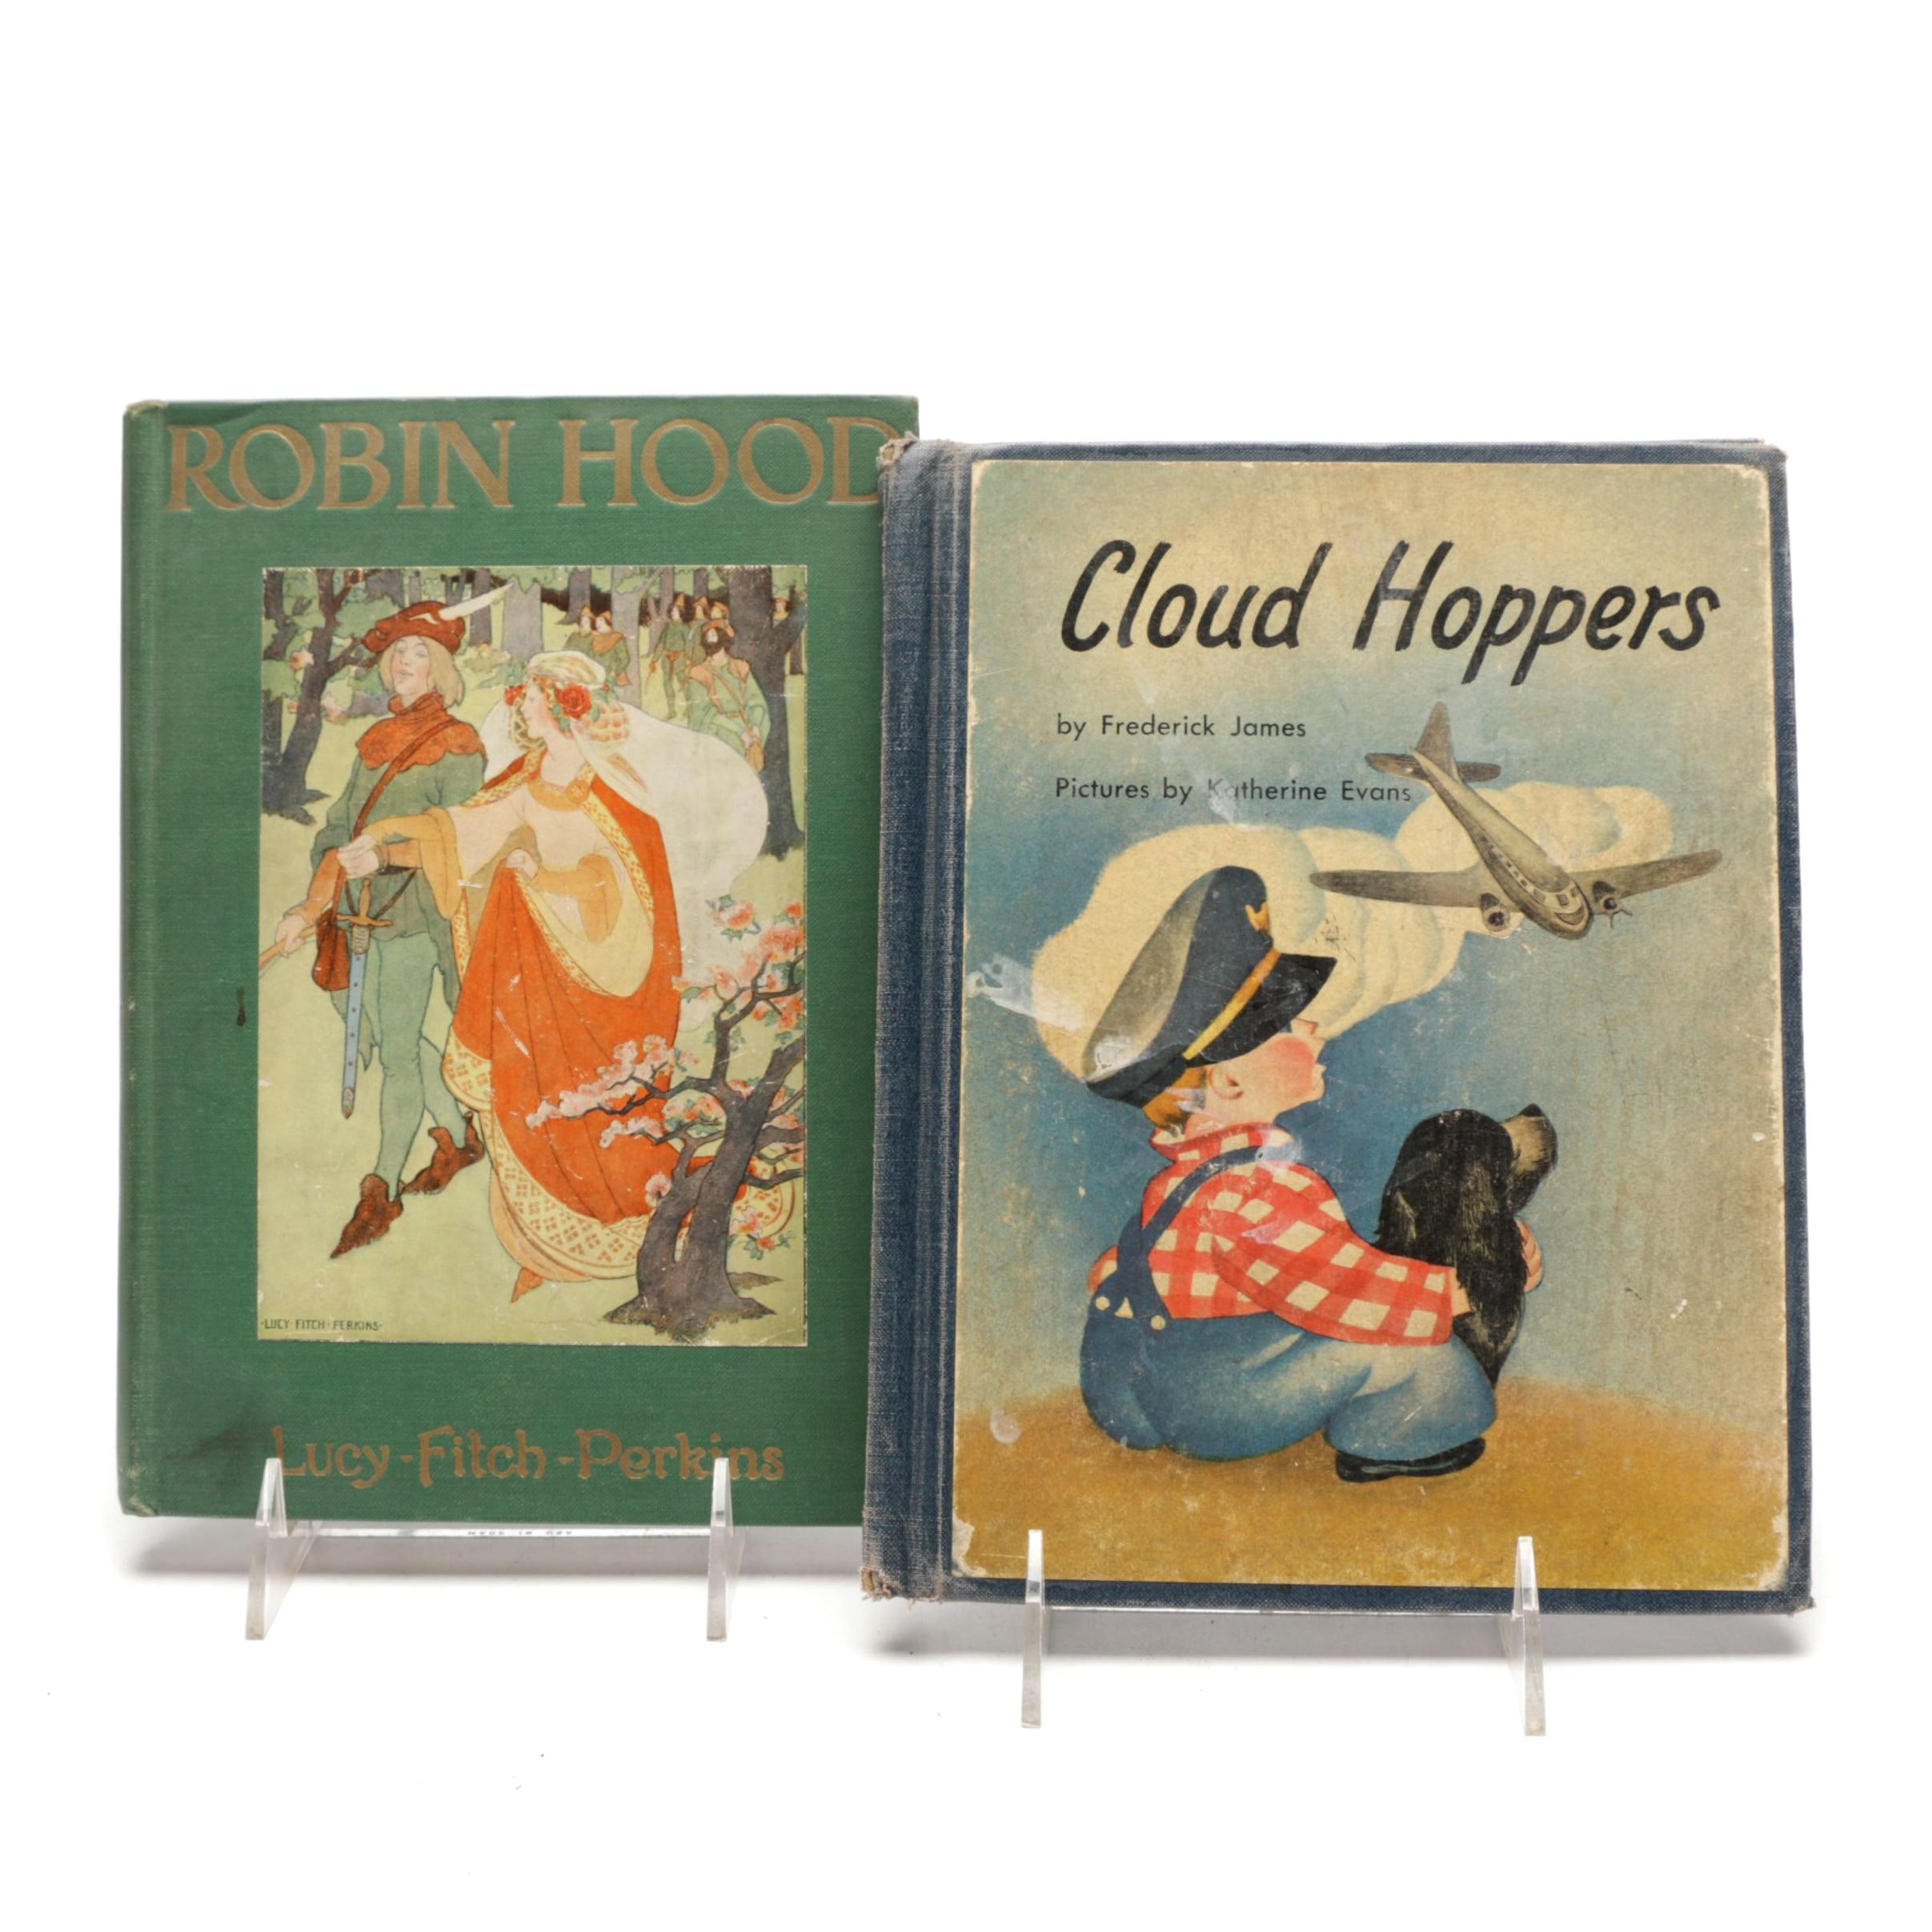 """Vintage """"Cloud Hoppers"""" and """"Robin Hood"""" Children's Books"""